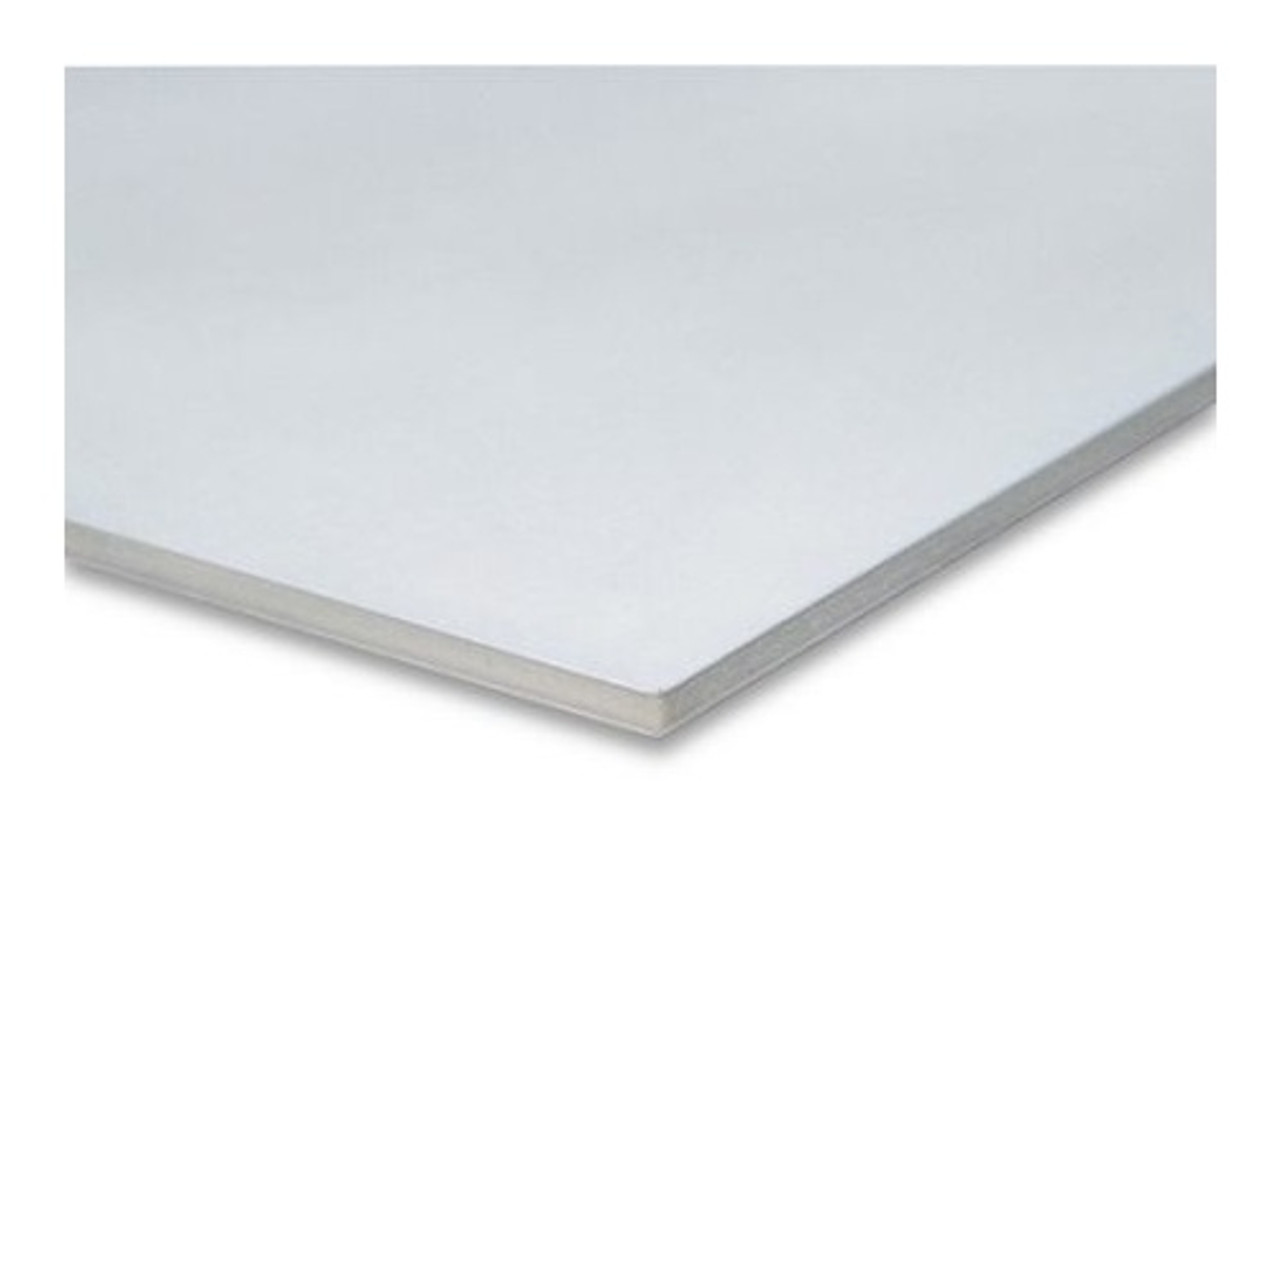 Museum Quality Acid Free Foamcore 4' x 8' (25 pc)